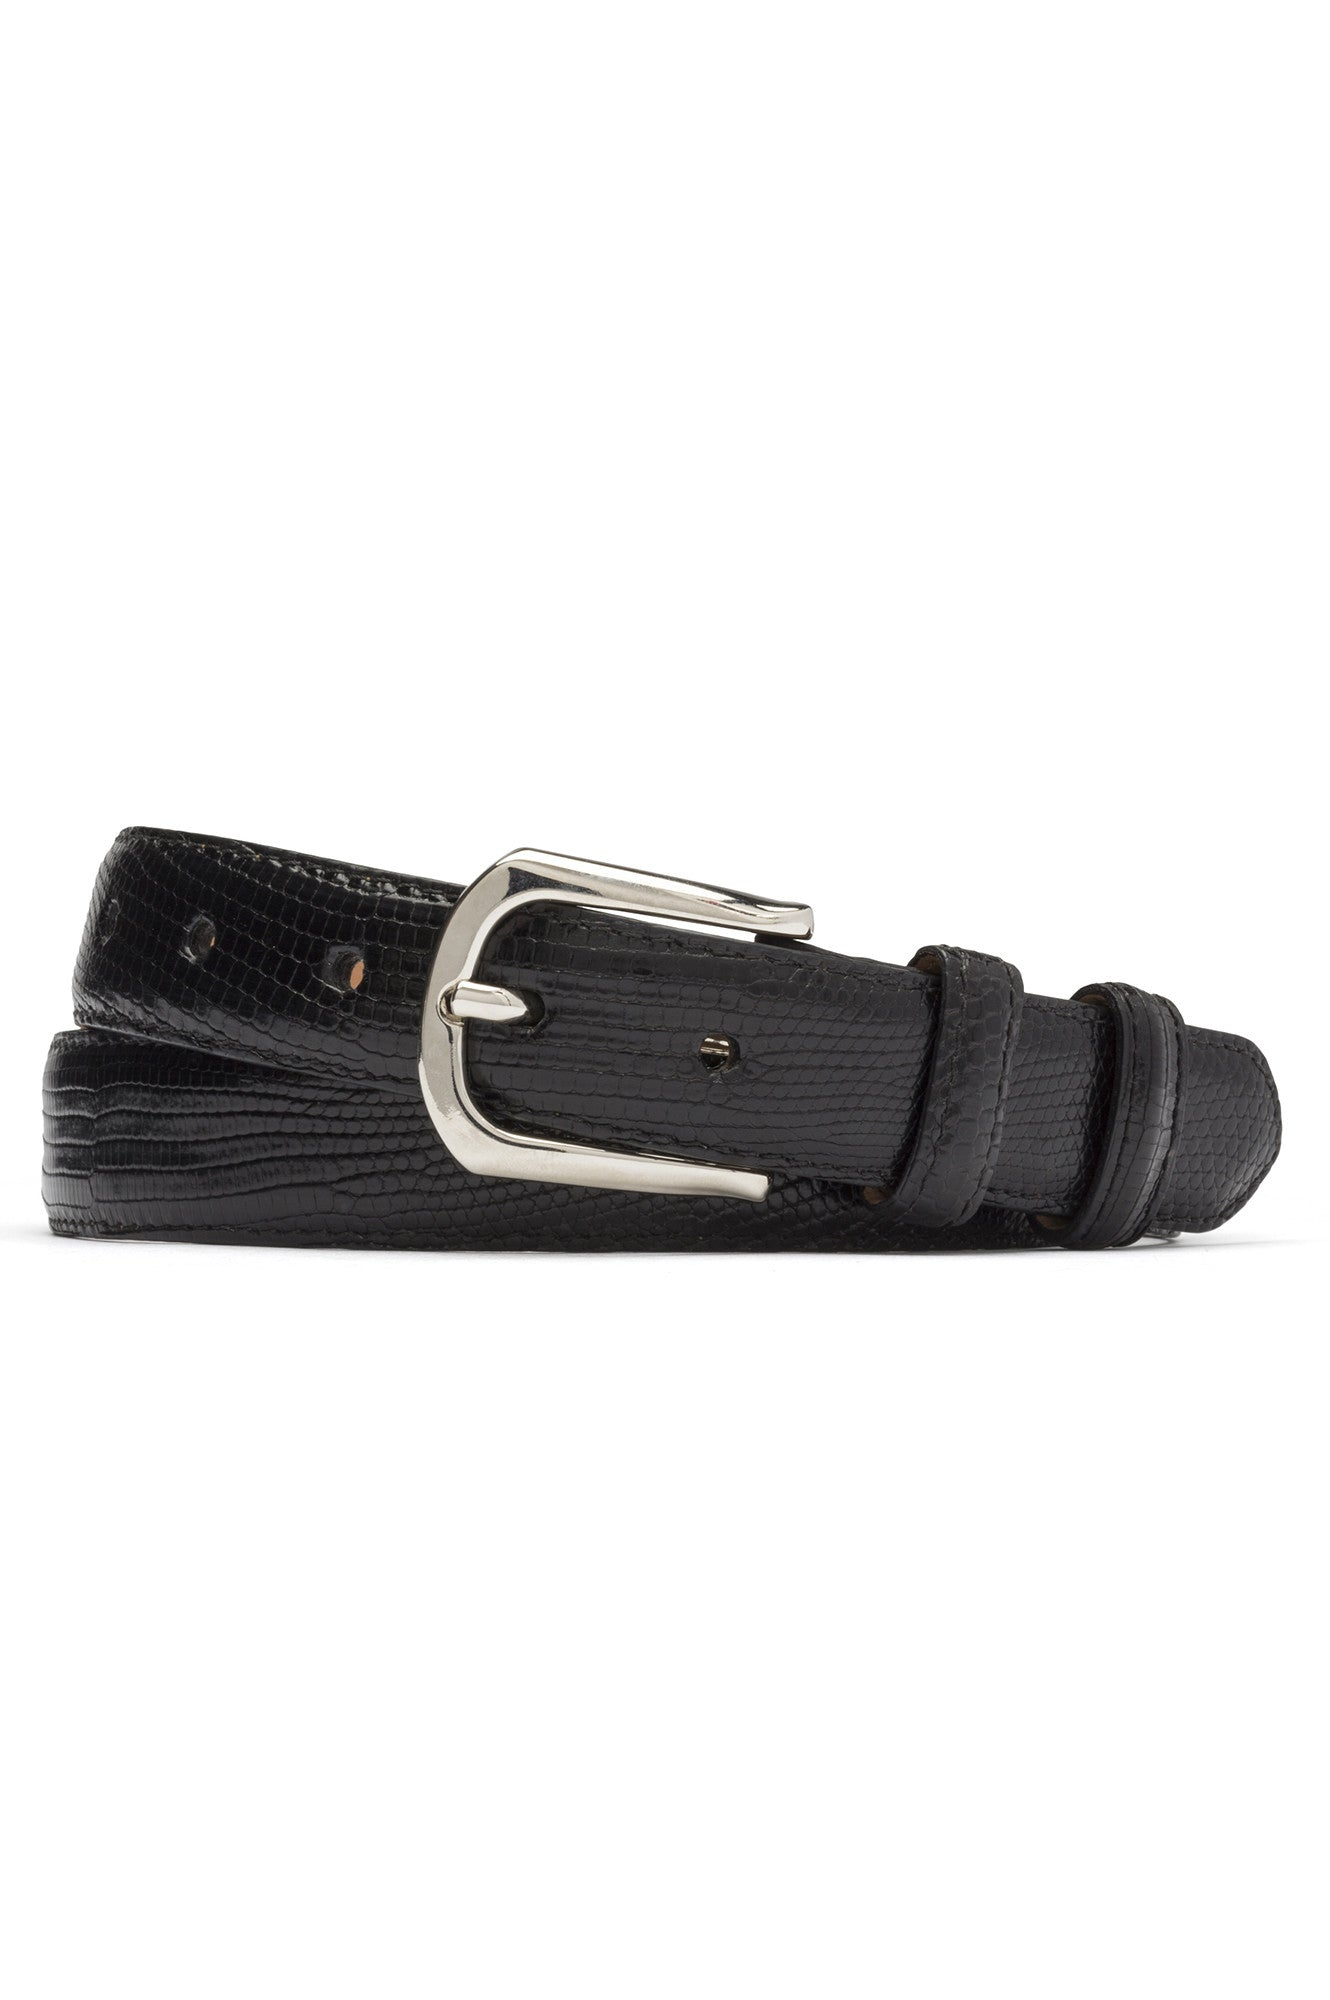 lizard skin mens w.kleinberg belt, mens black belt, lizard skin, genuine lizard, w.kleinberg belts